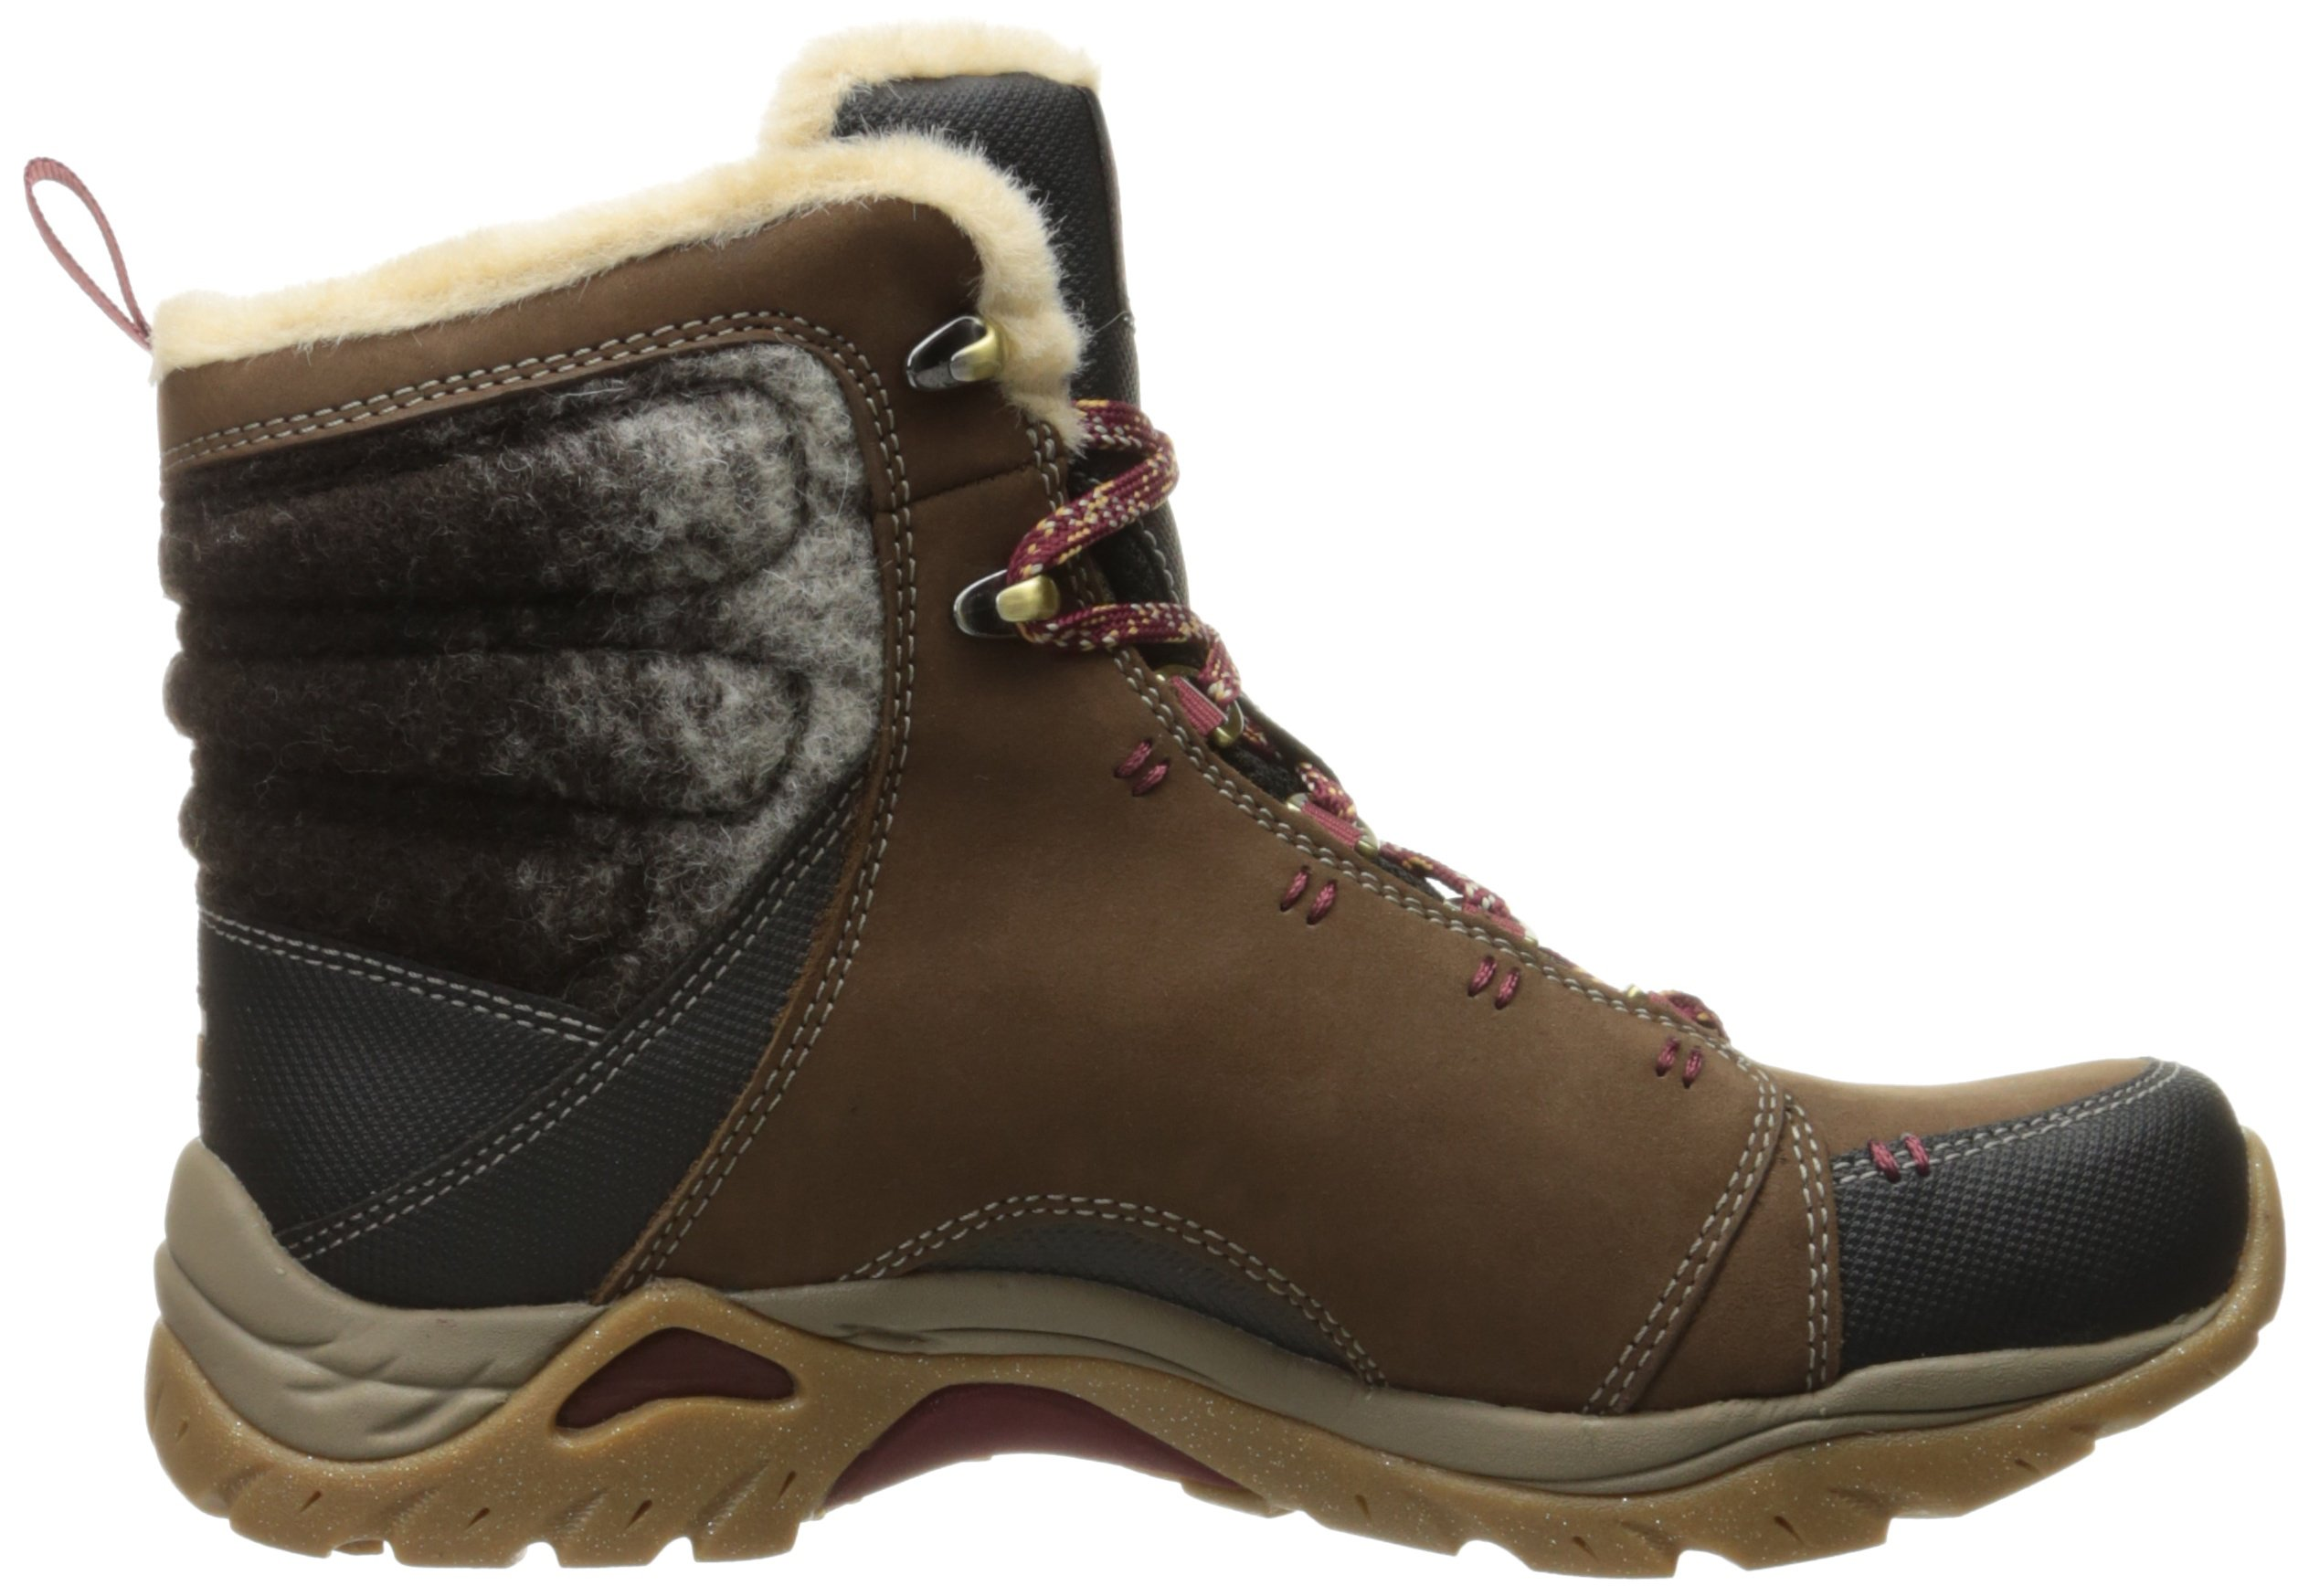 Ahnu Women's Montara Waterproof Boot,Corduroy,9 M US by Ahnu (Image #7)